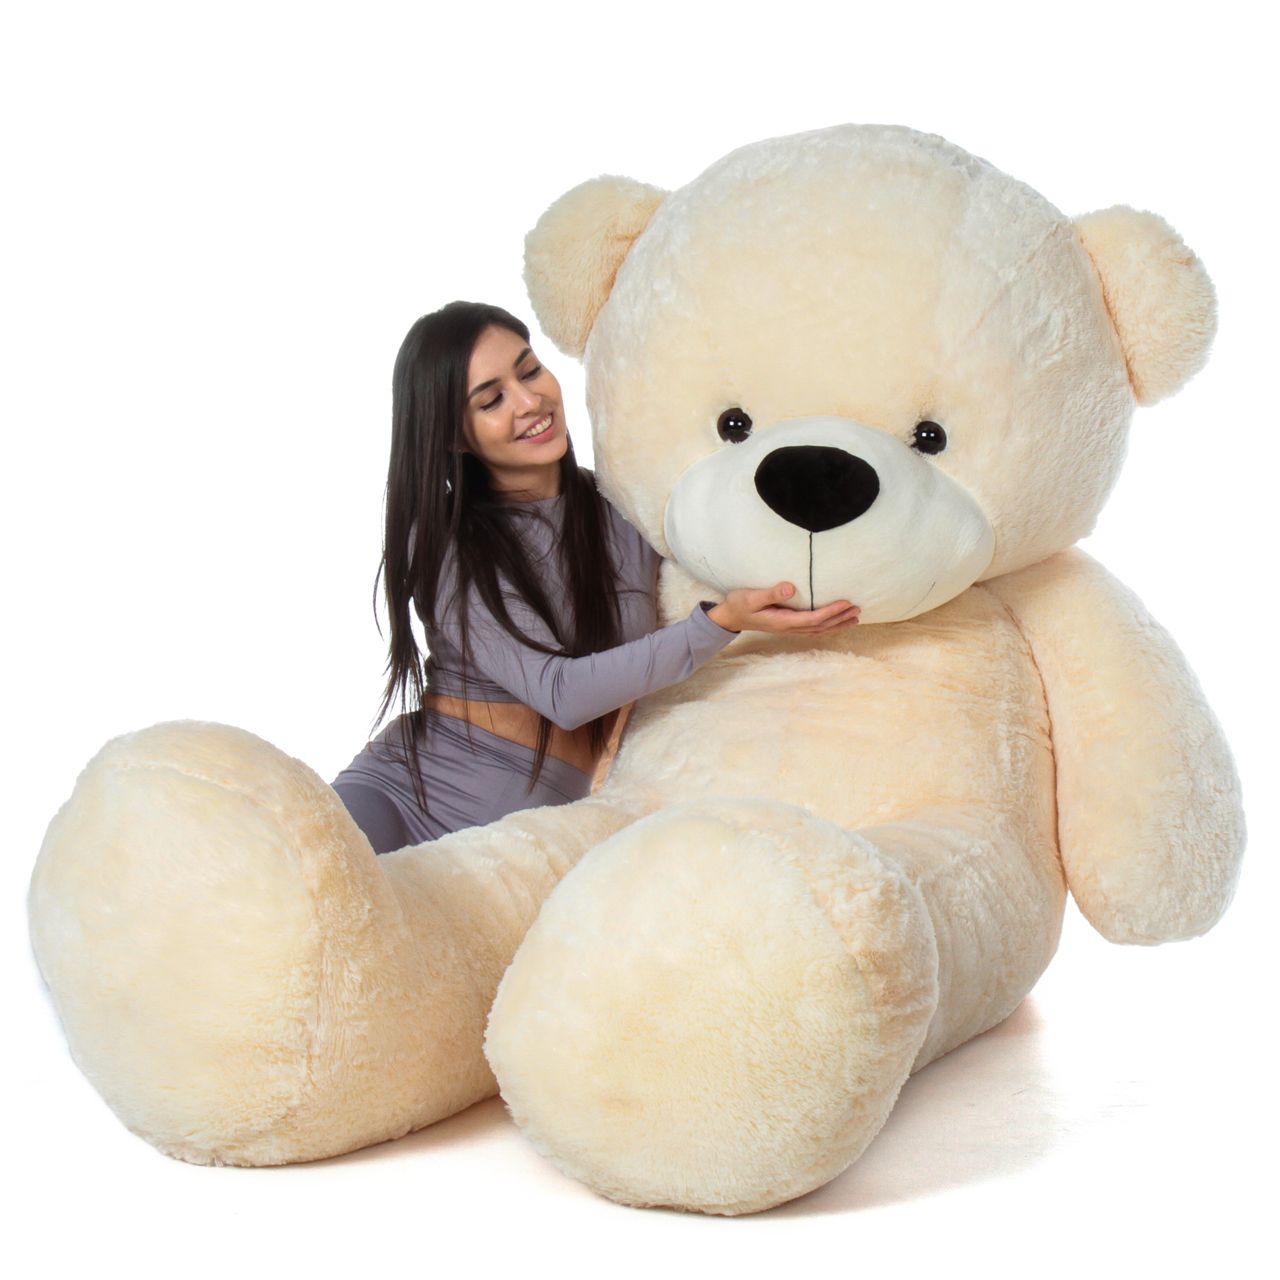 Pin By Emmapena On Quick Saves In 2021 Giant Teddy Bear Giant Teddy Big Teddy [ 1280 x 1280 Pixel ]